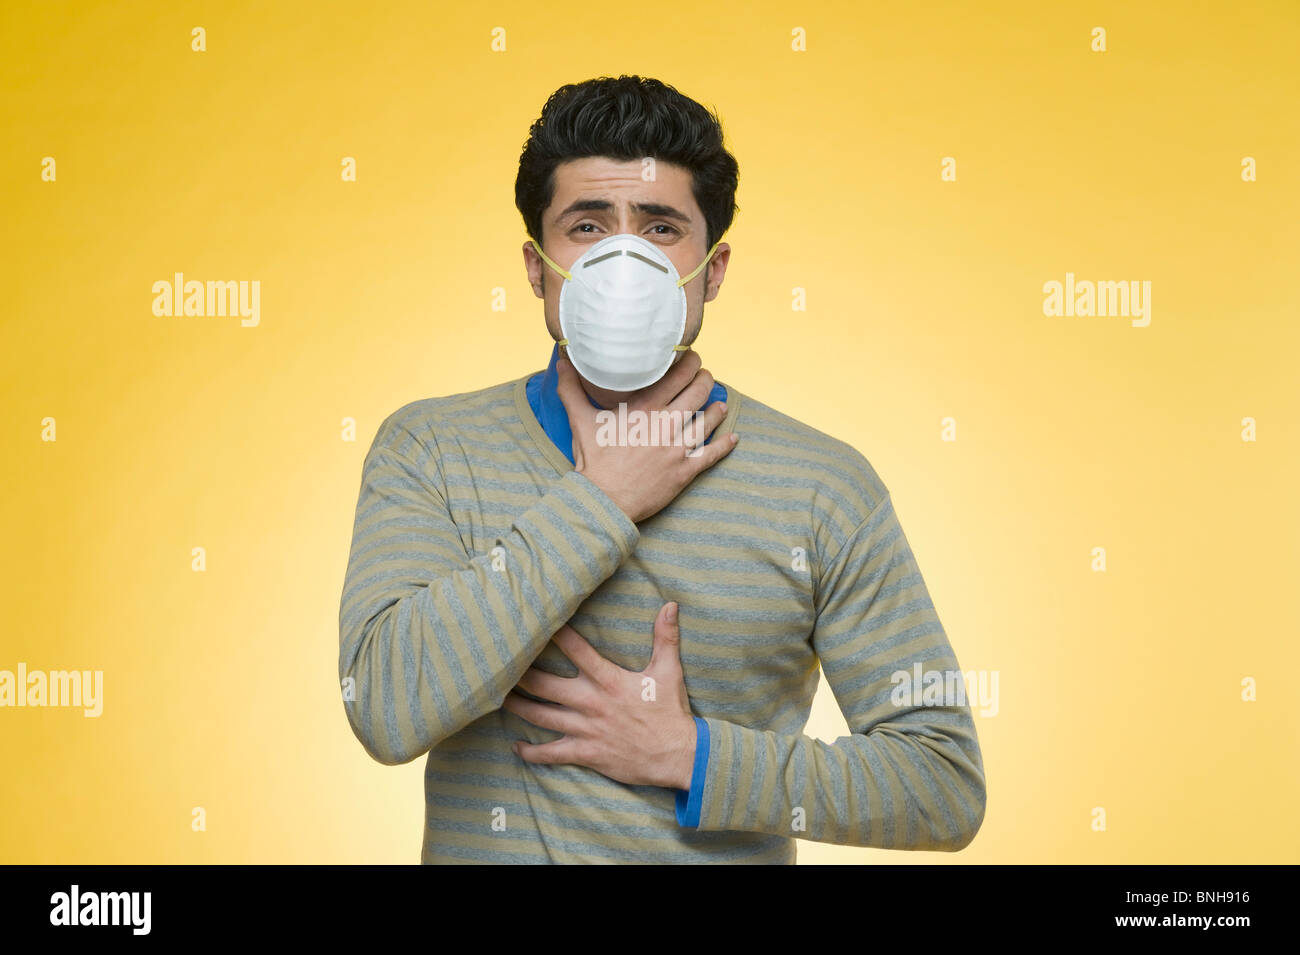 Man wearing a pollution mask - Stock Image